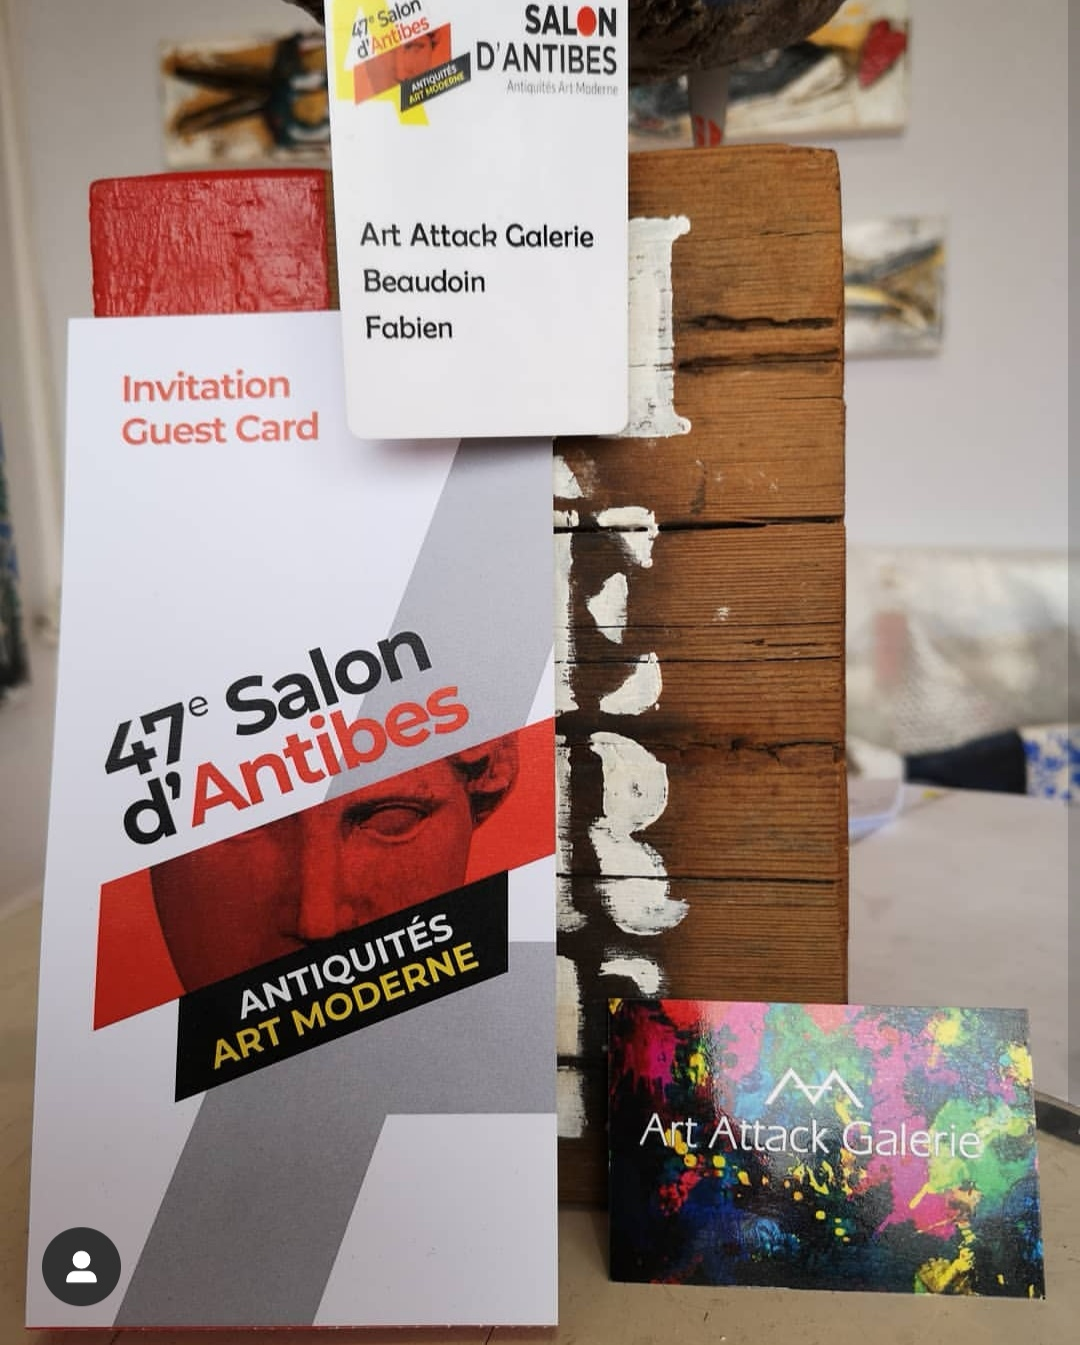 47° Salon d'Antibes 2019